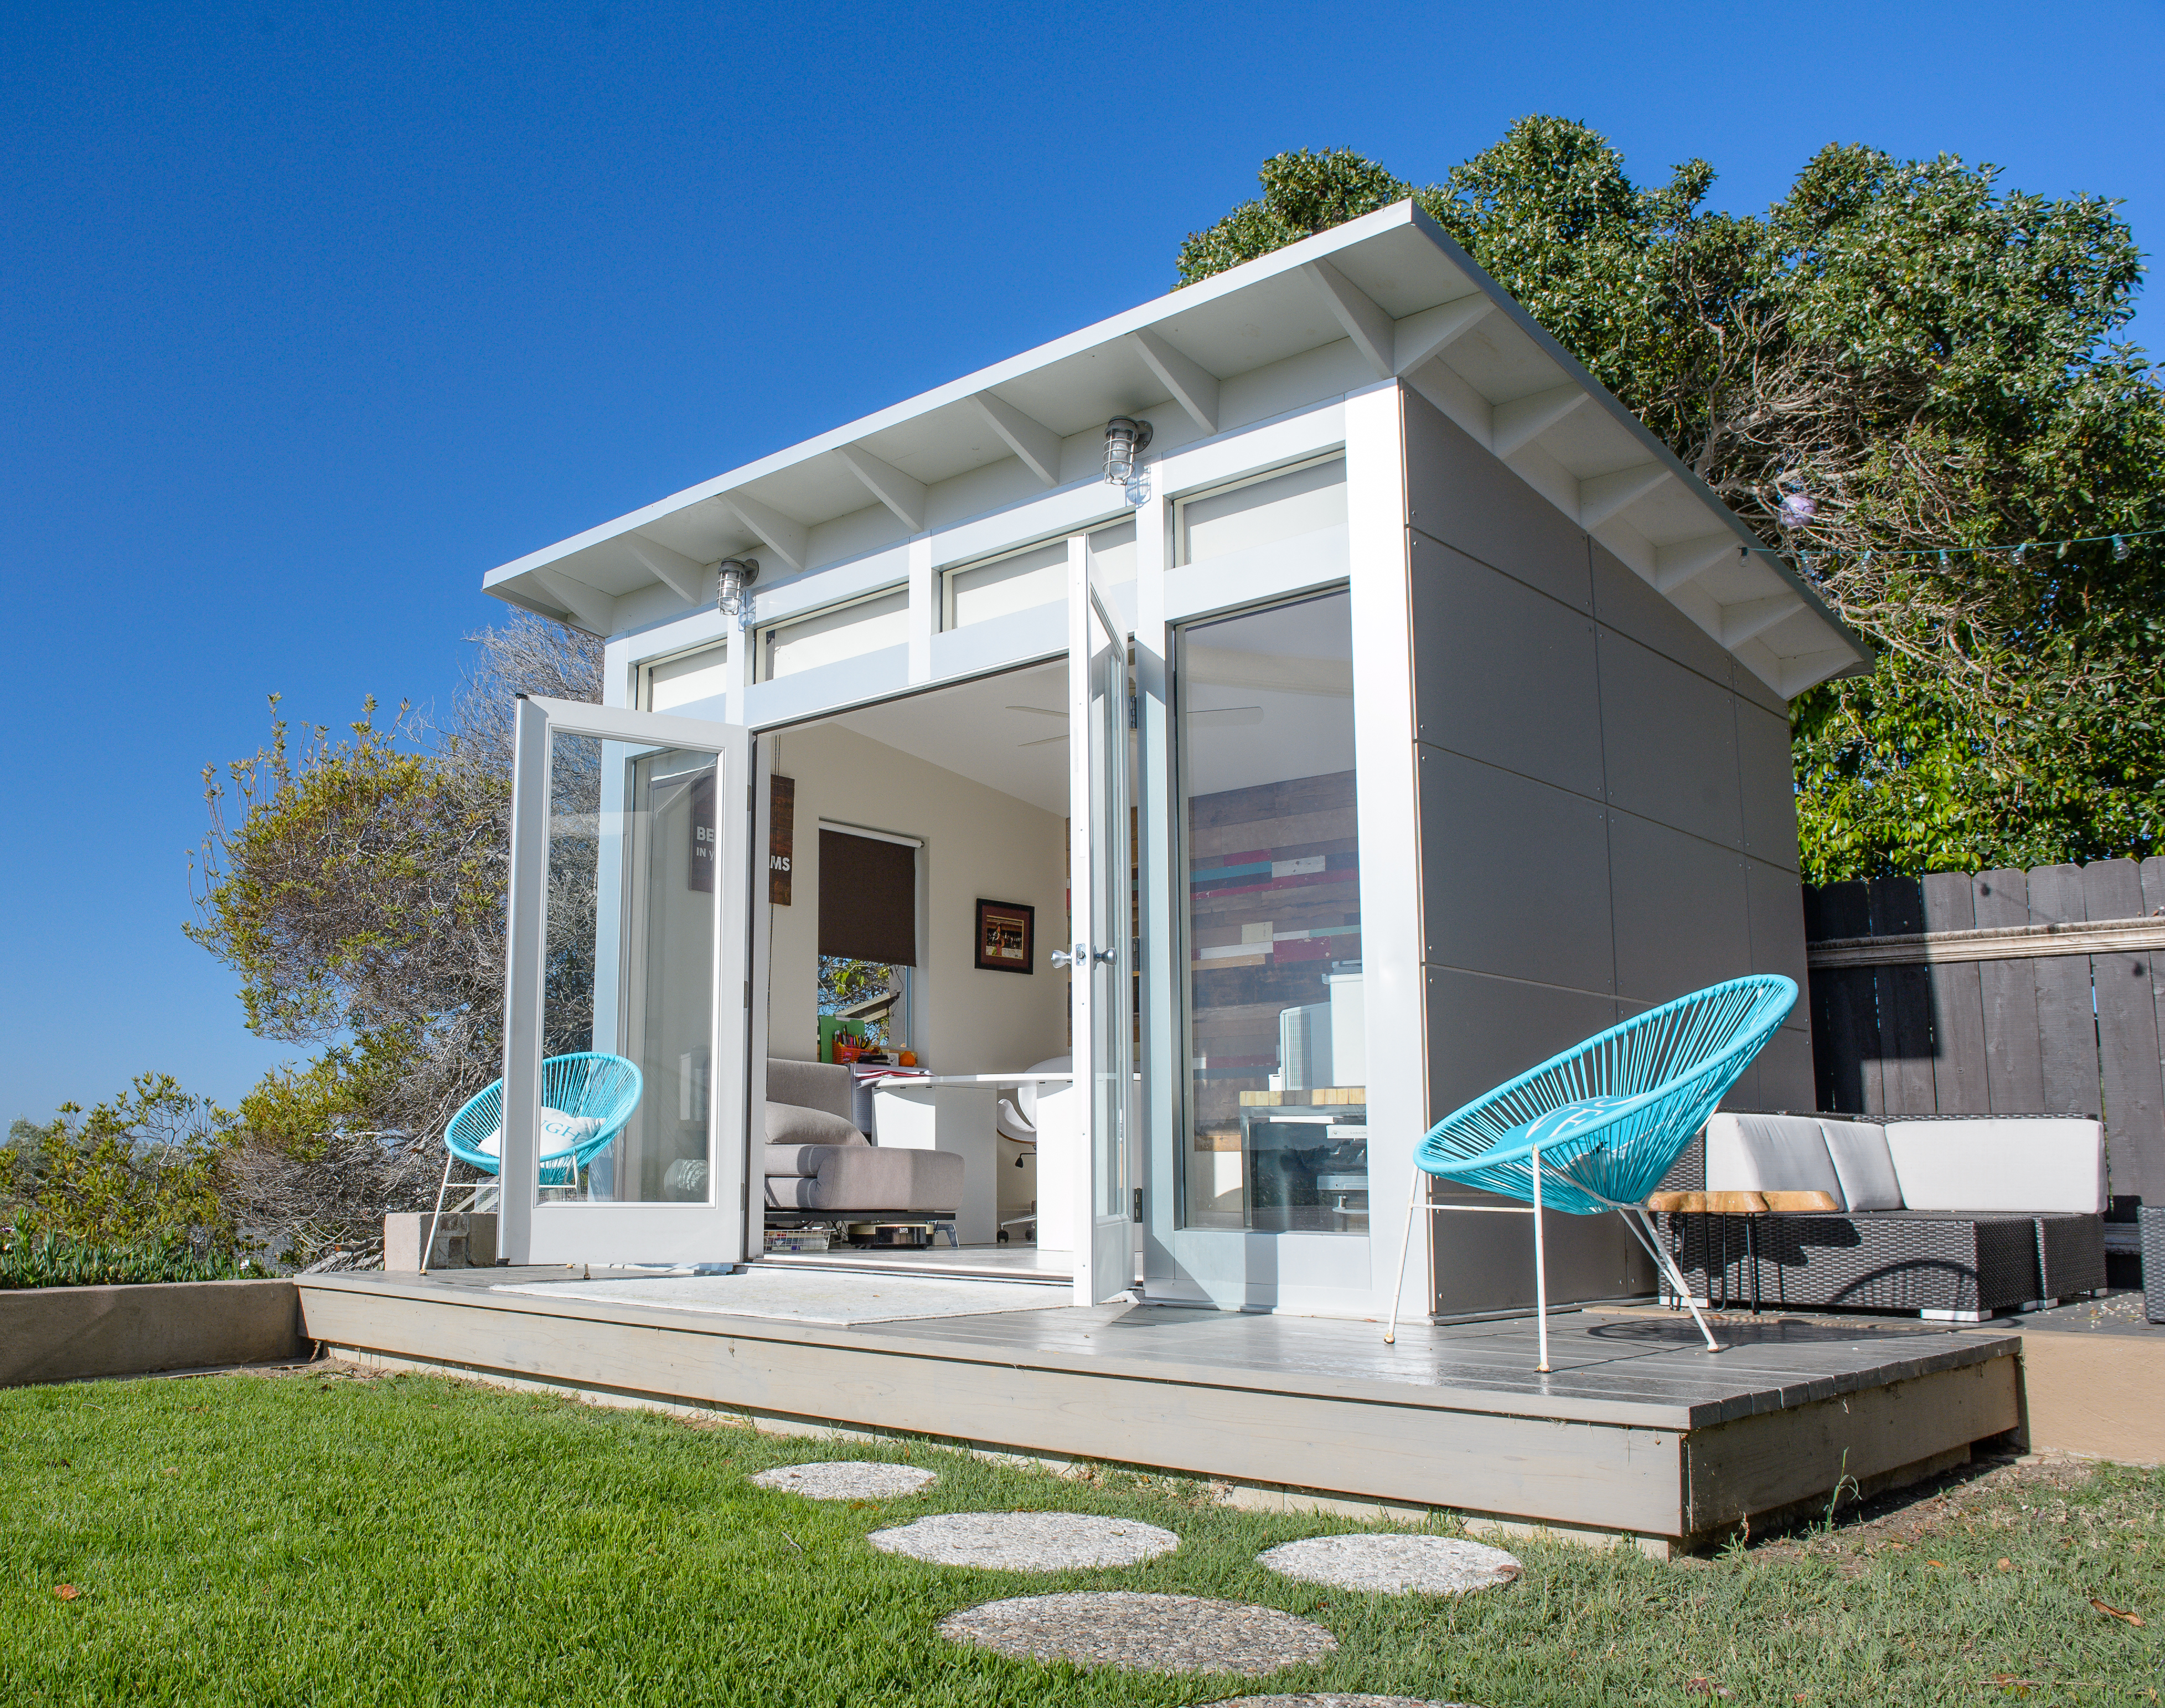 Prefab - Curbed on pod houses, pod housing additions, small sustainable home design, office pod design, yurt interior floor plans design,